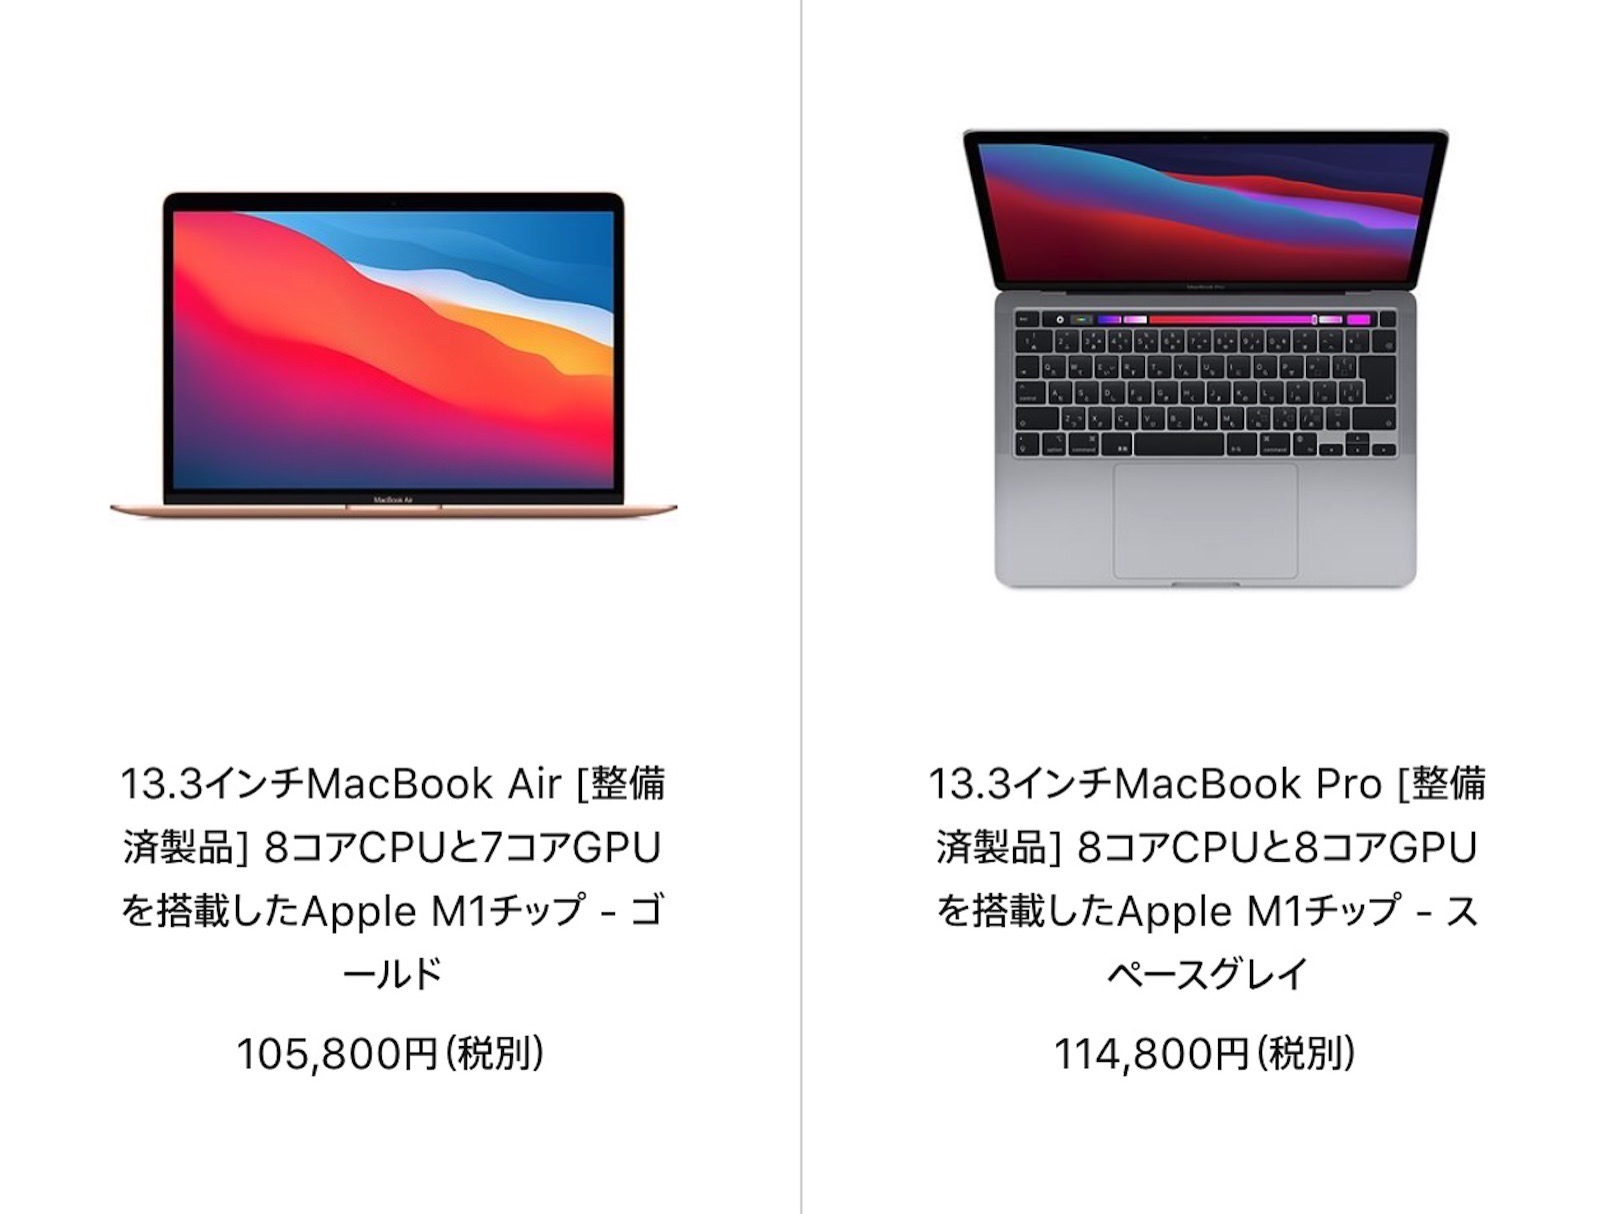 M1 macbook pro and air refurbished